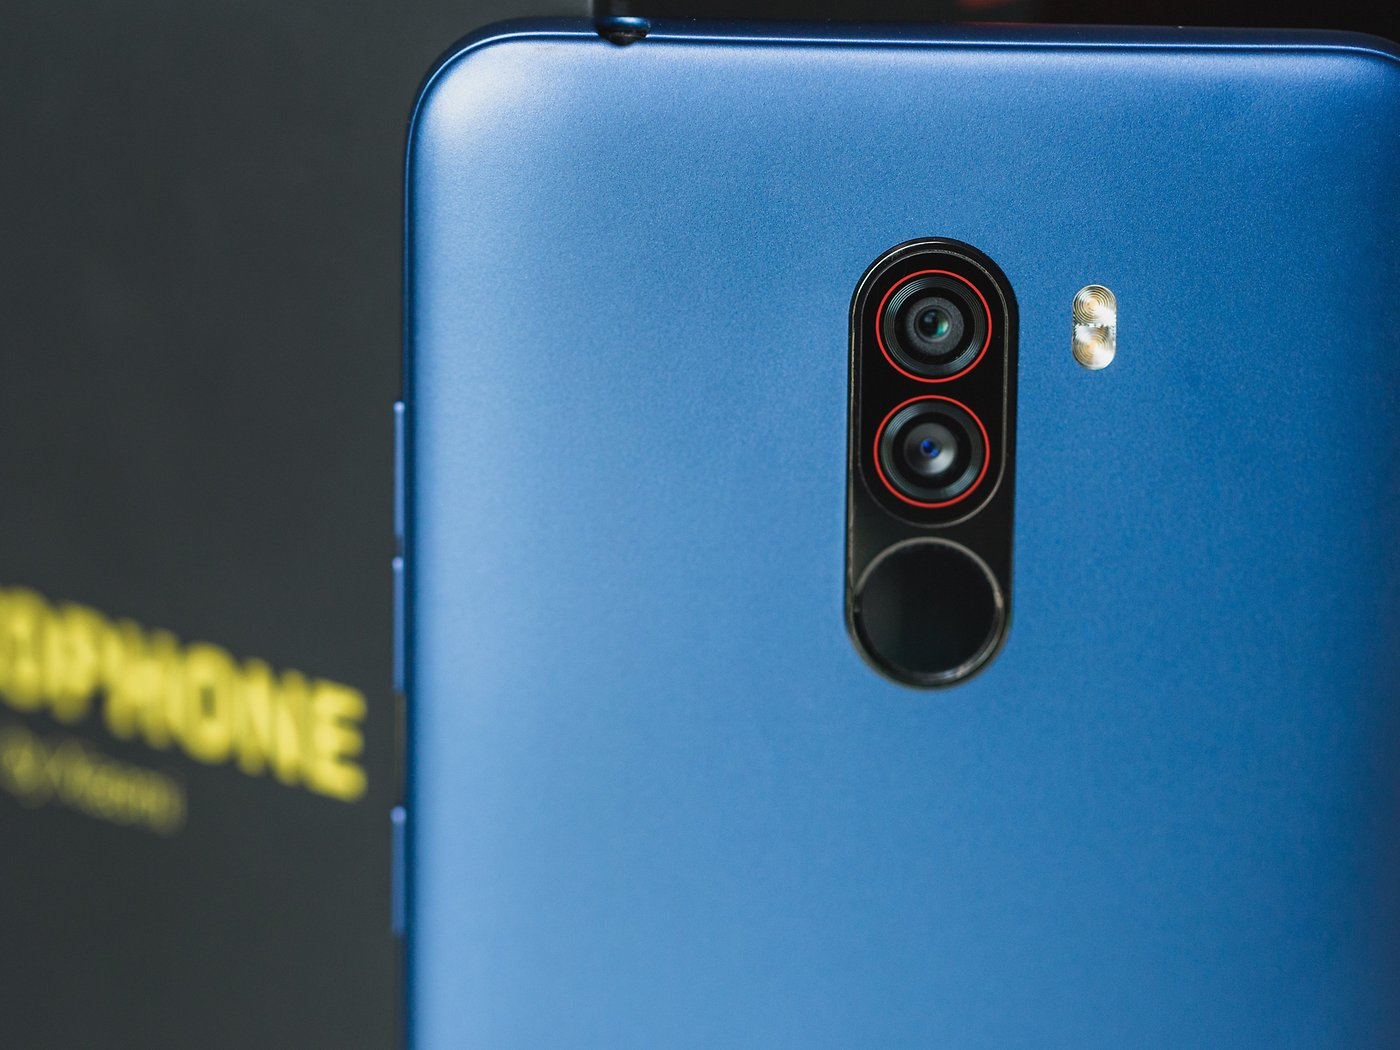 Pocophone F1 camera review: hats off to Xiaomi! | AndroidPIT